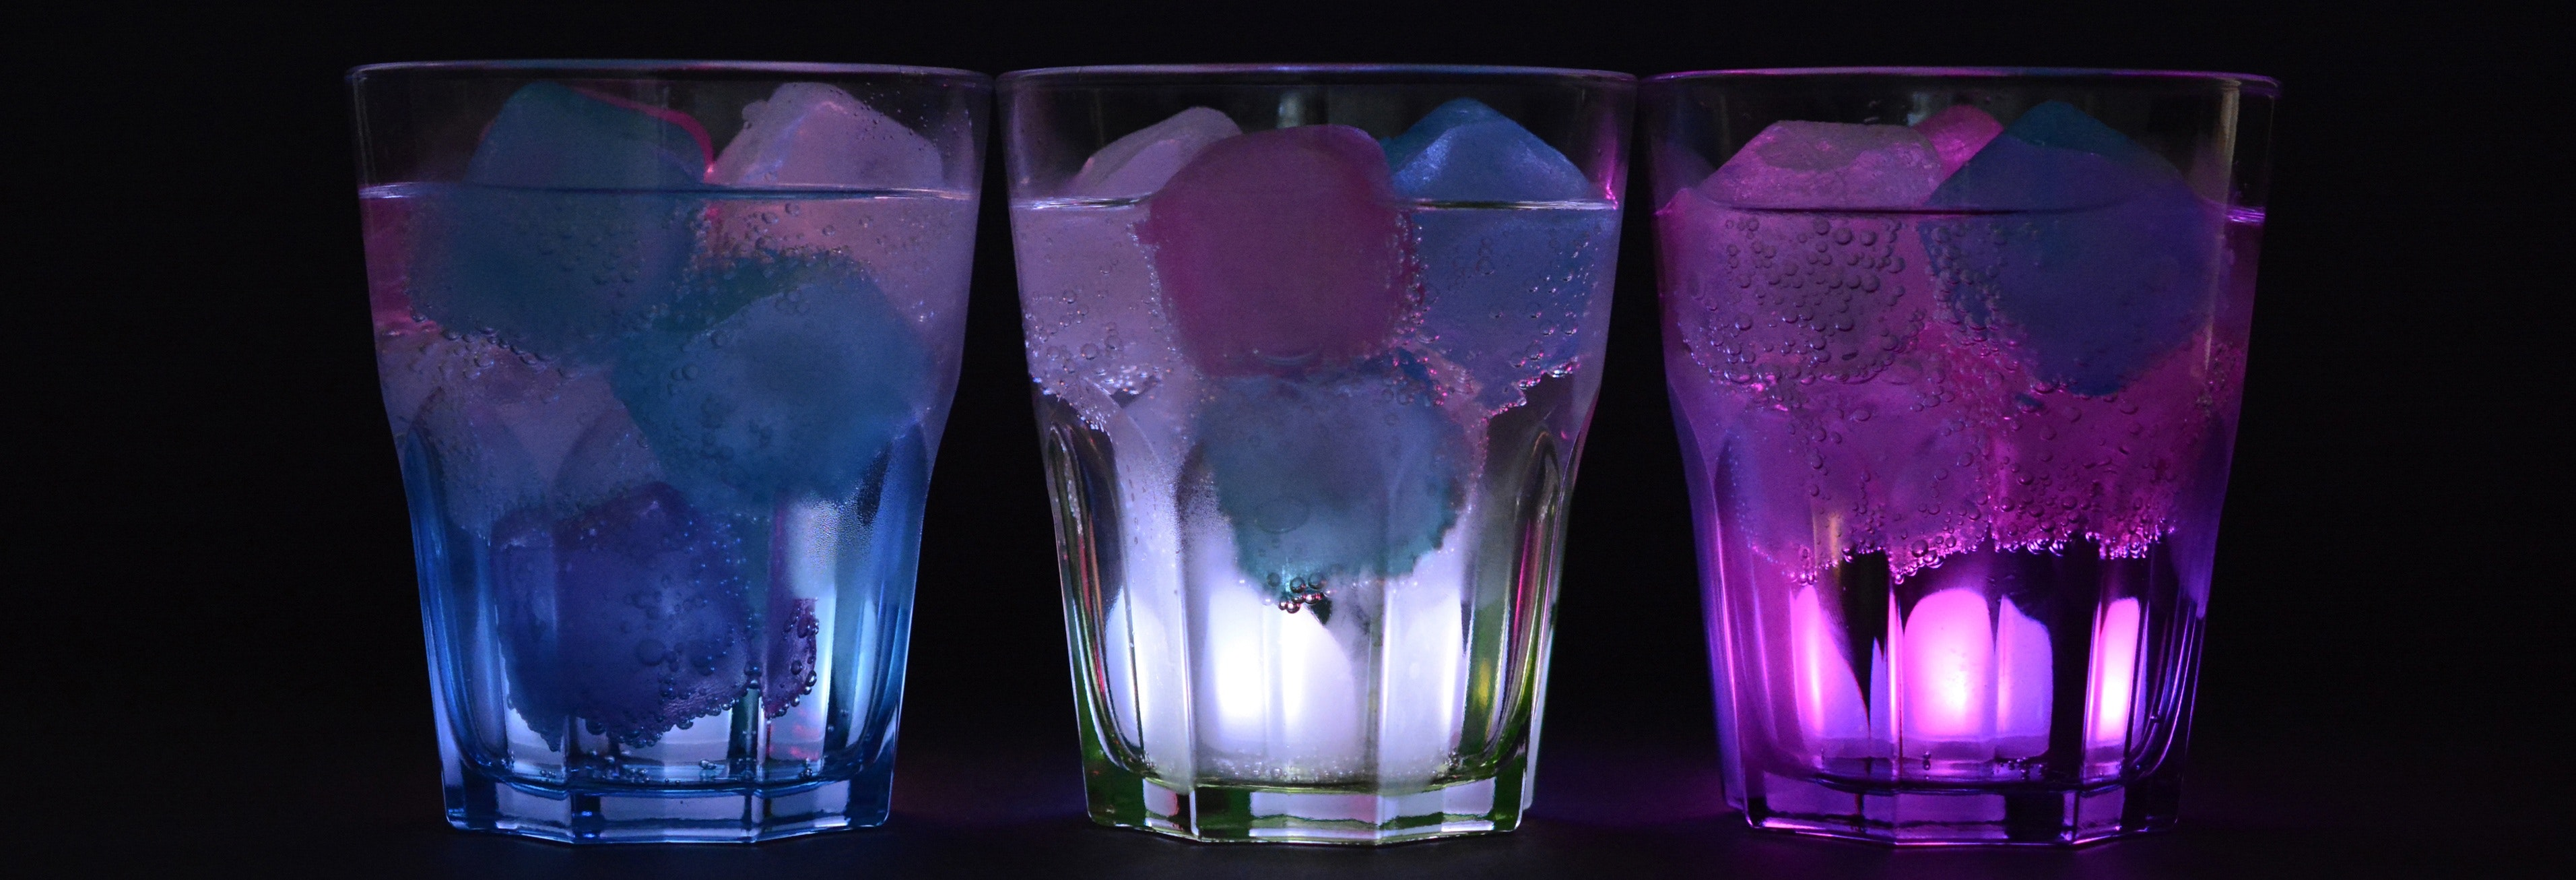 3 Lighted Clear Drinking Glass With Beverage, Ice cubes, Illuminated, Ice, Glasses, HQ Photo